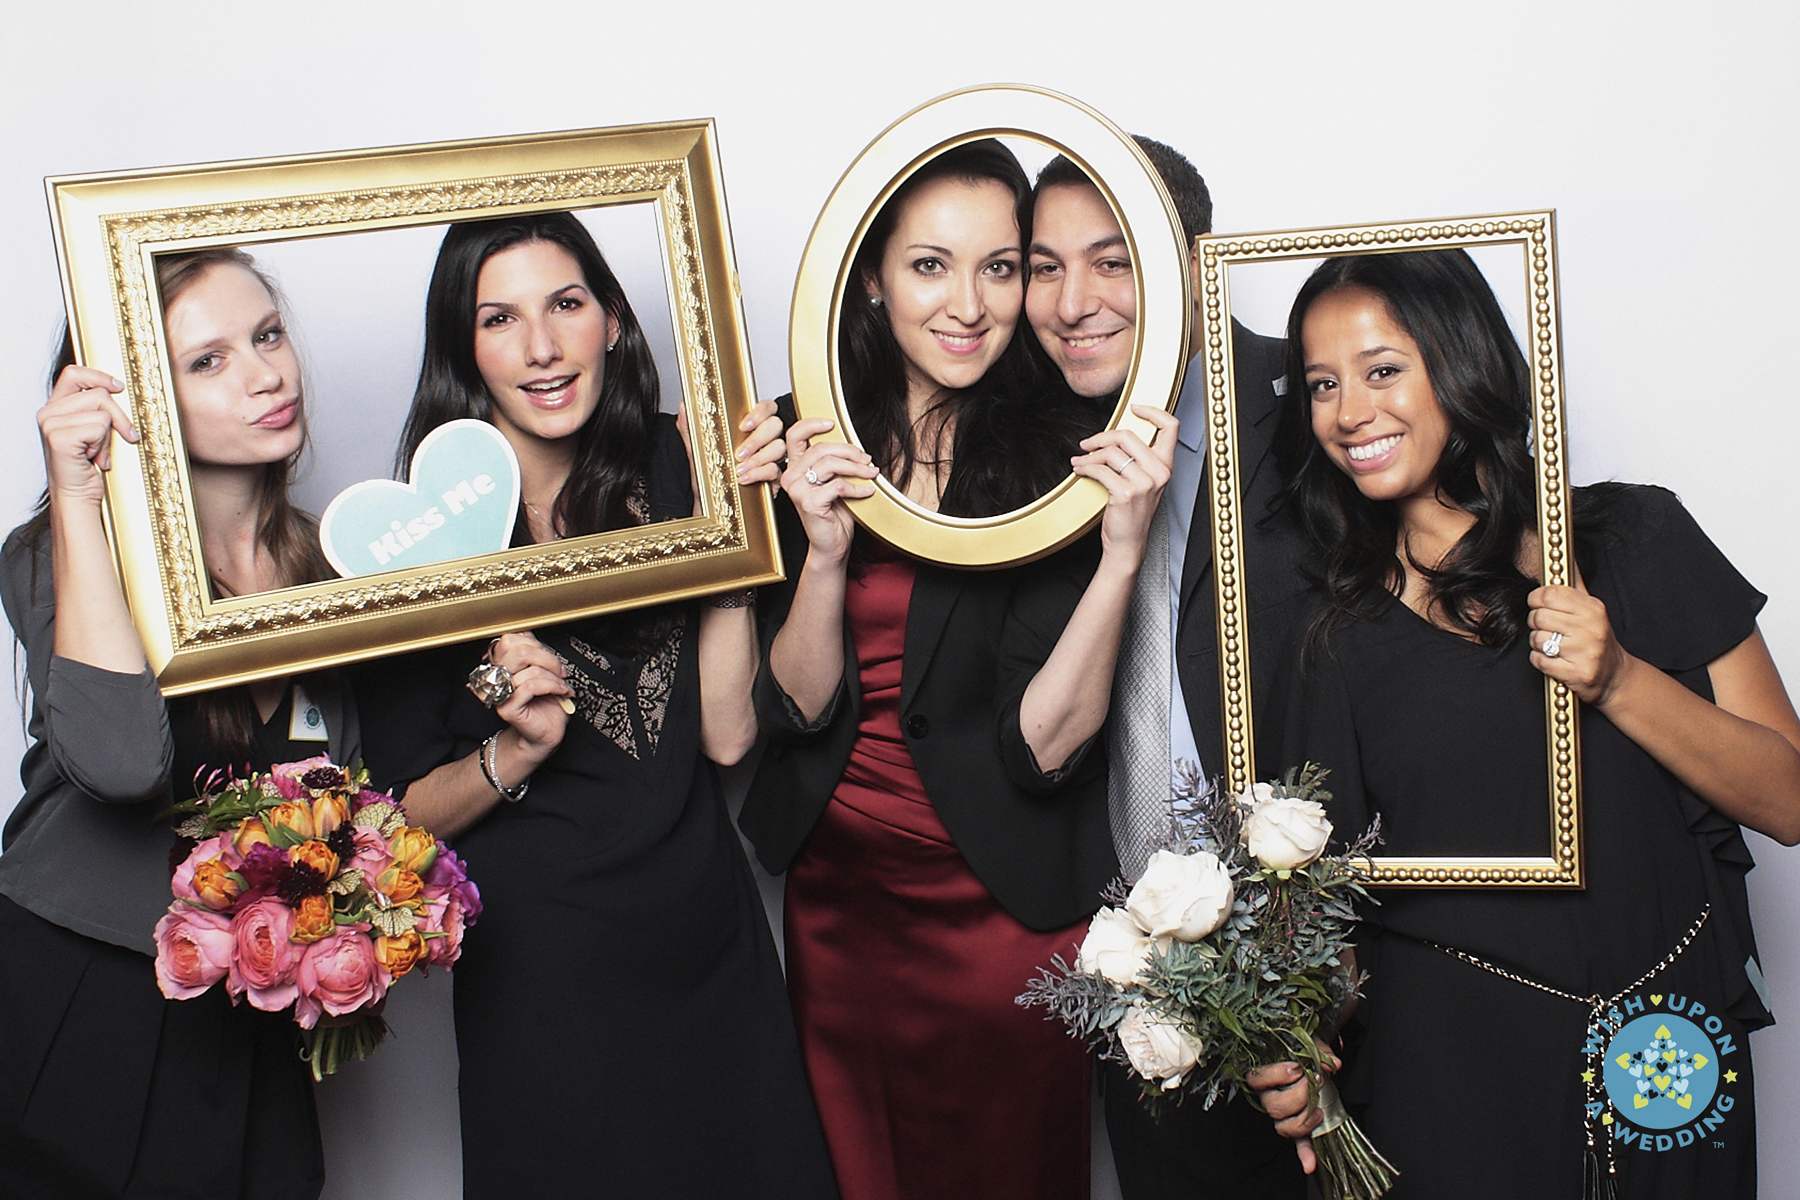 hire the wedding photo booth and innovate creative photos